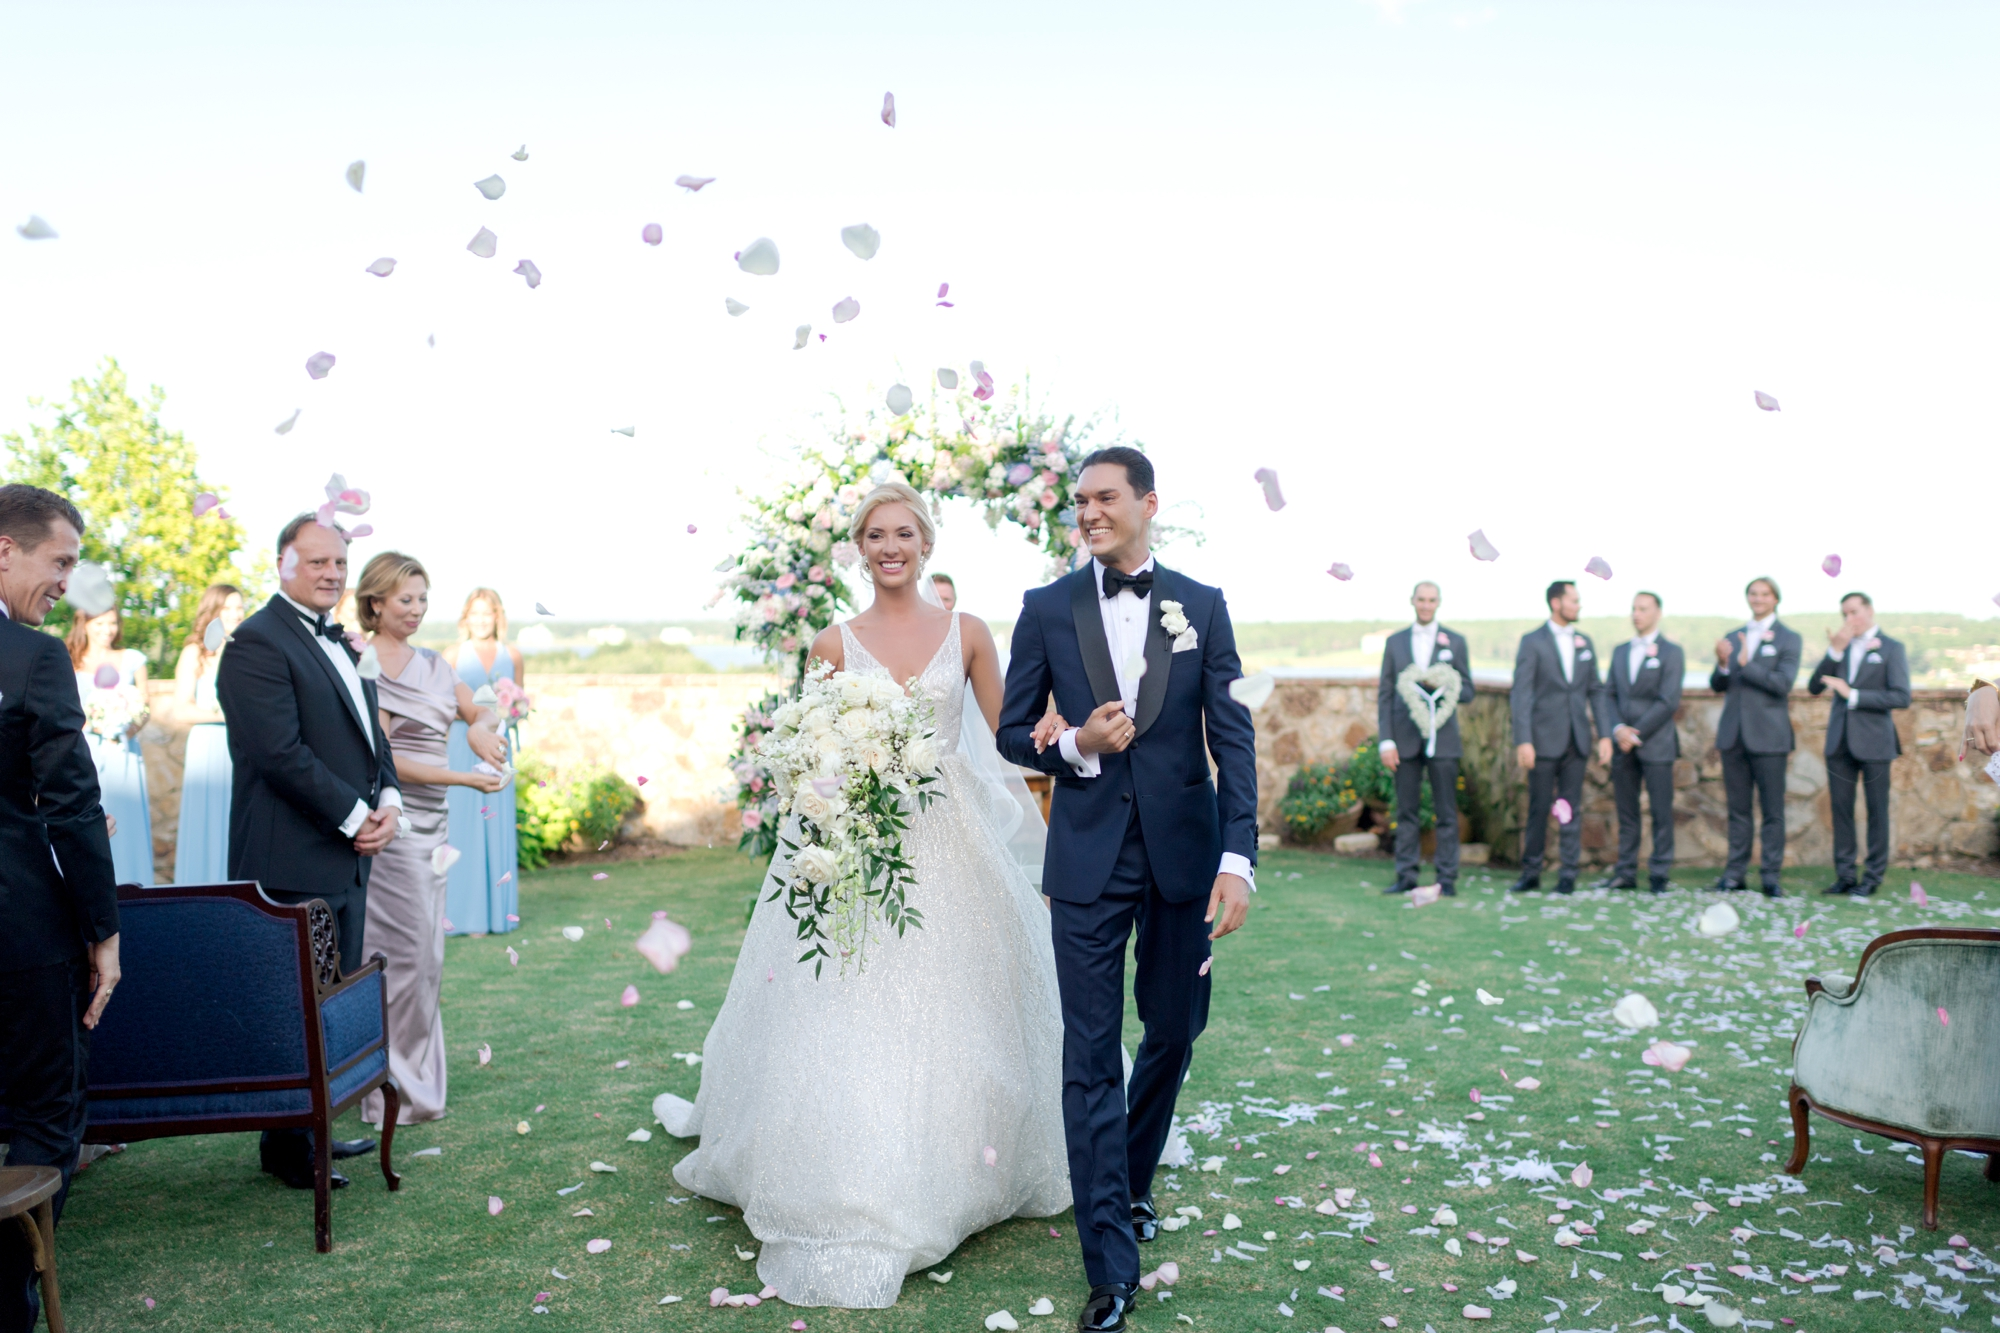 confetti toss at ceremony